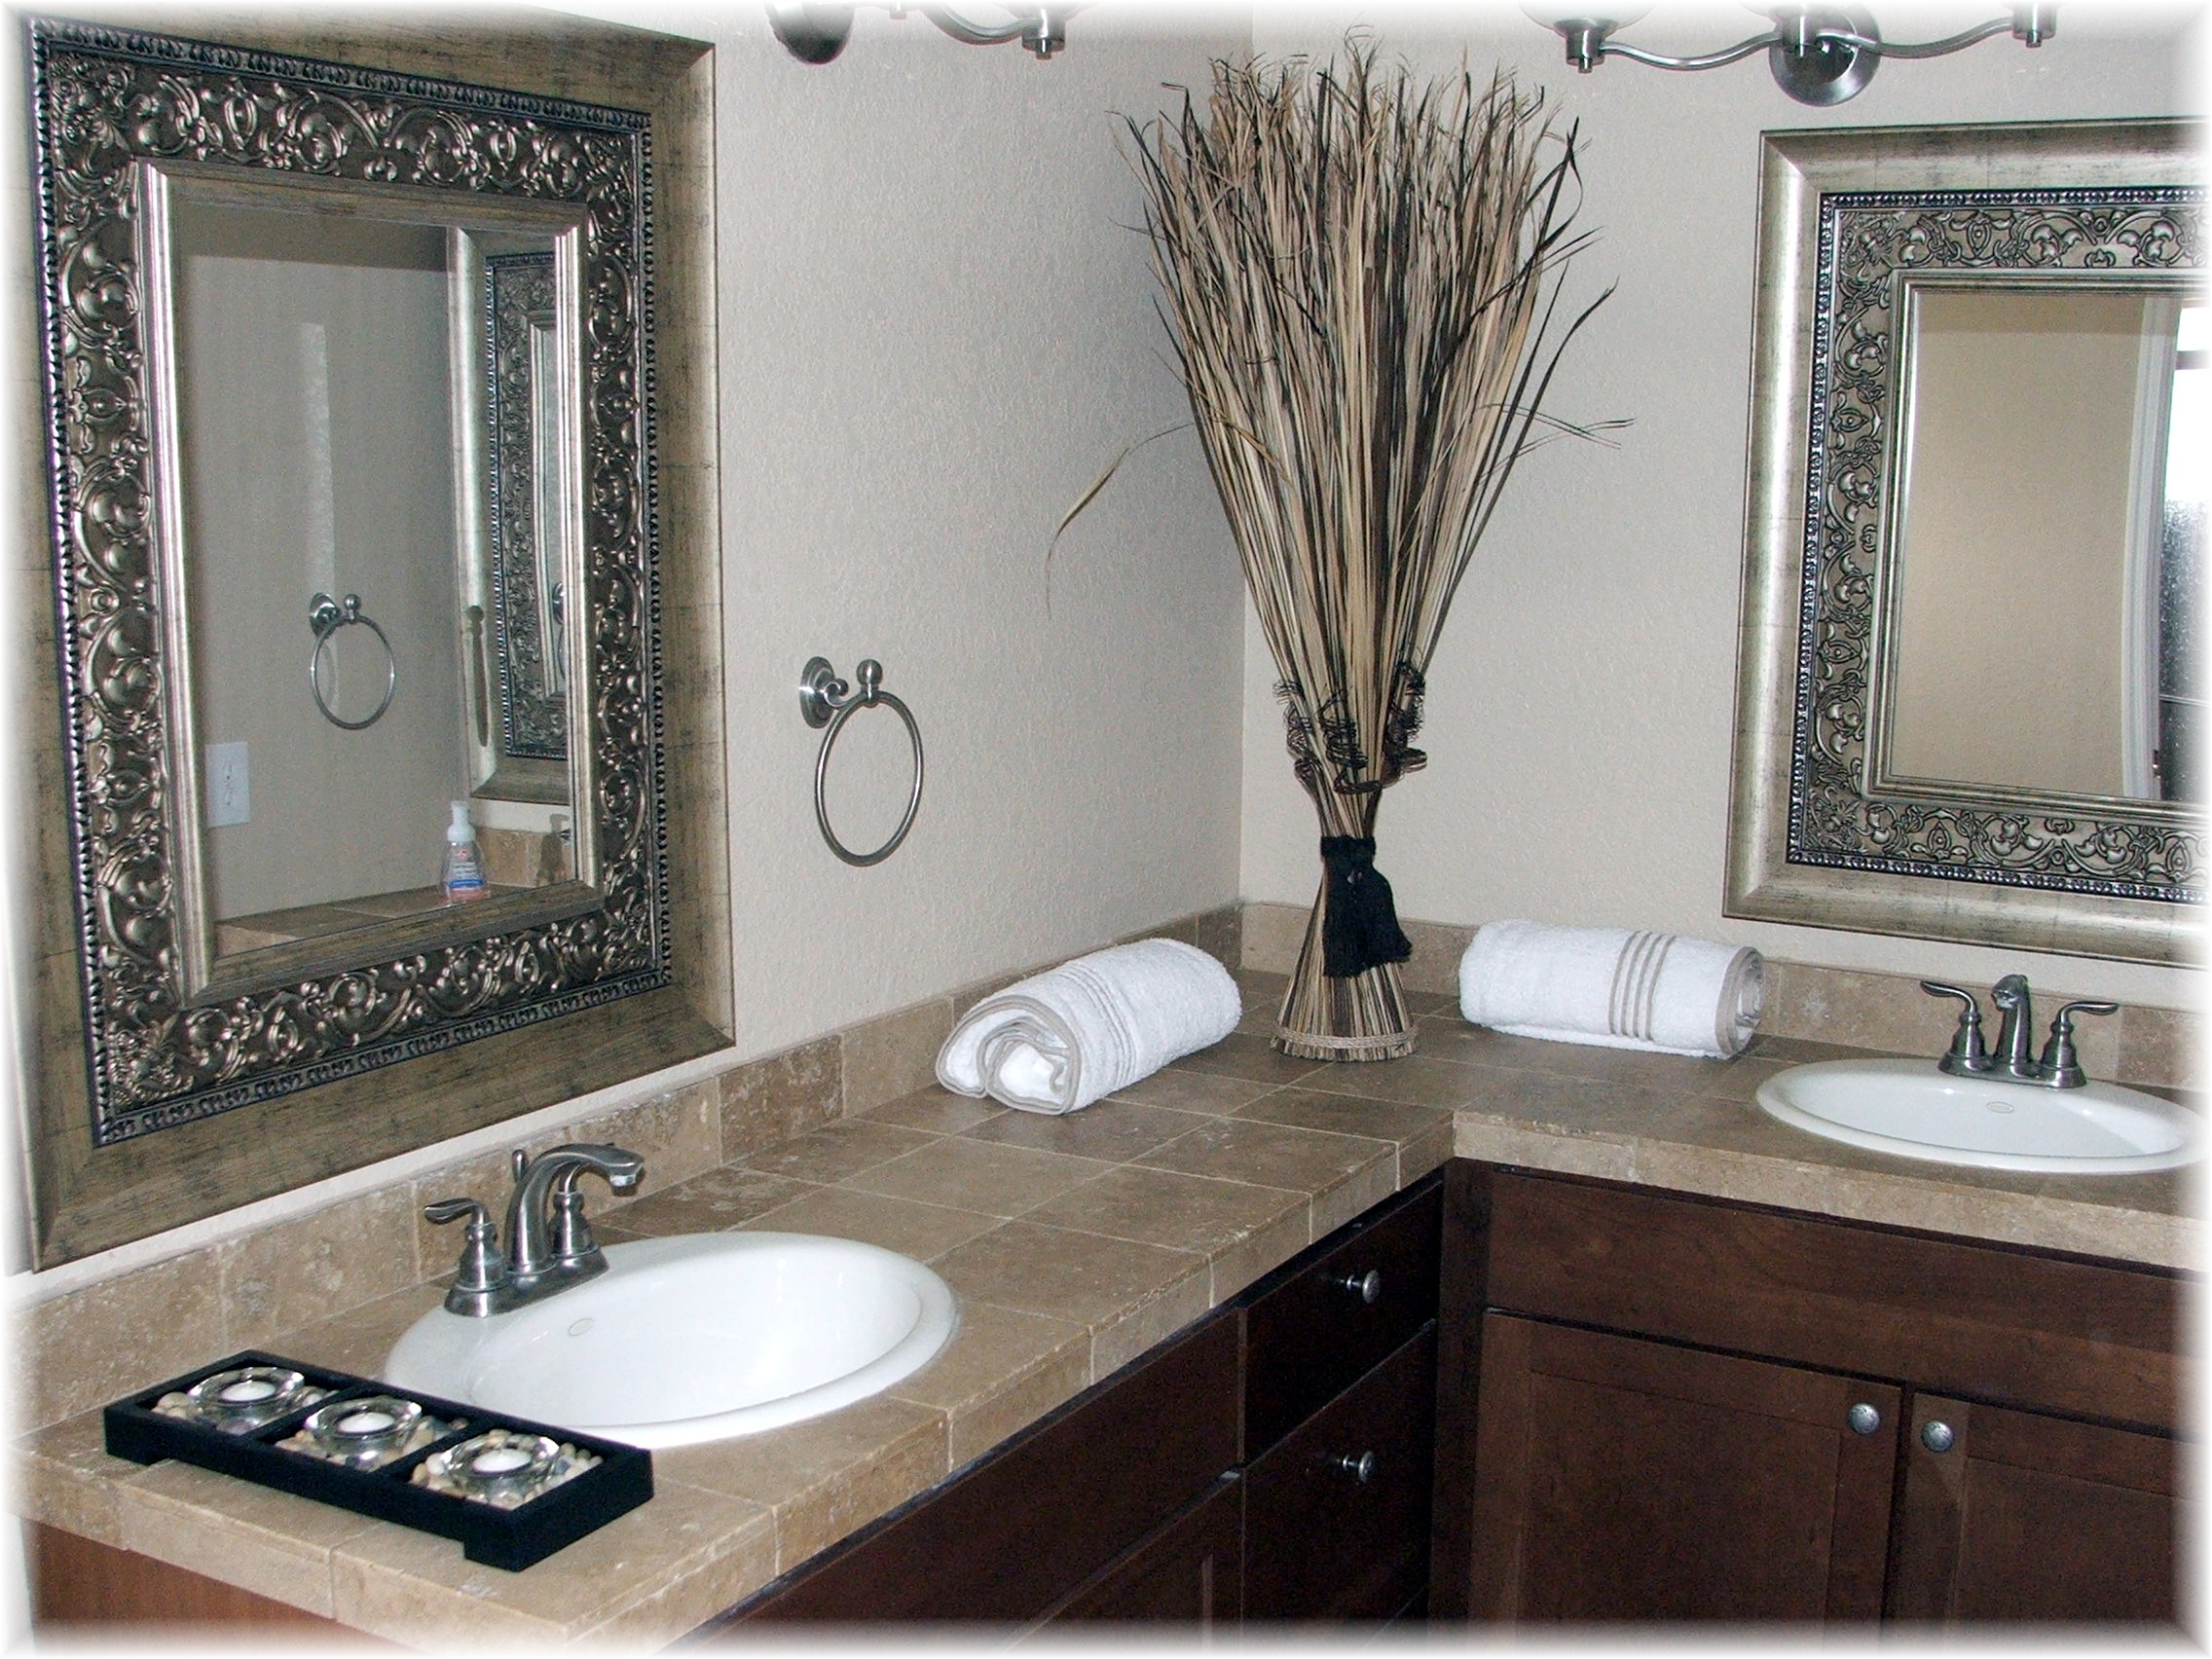 Silver Bathroom Mirror With Shelf Creative Bathroom Decoration For Silver Bathroom Mirror Rectangular (Image 15 of 15)